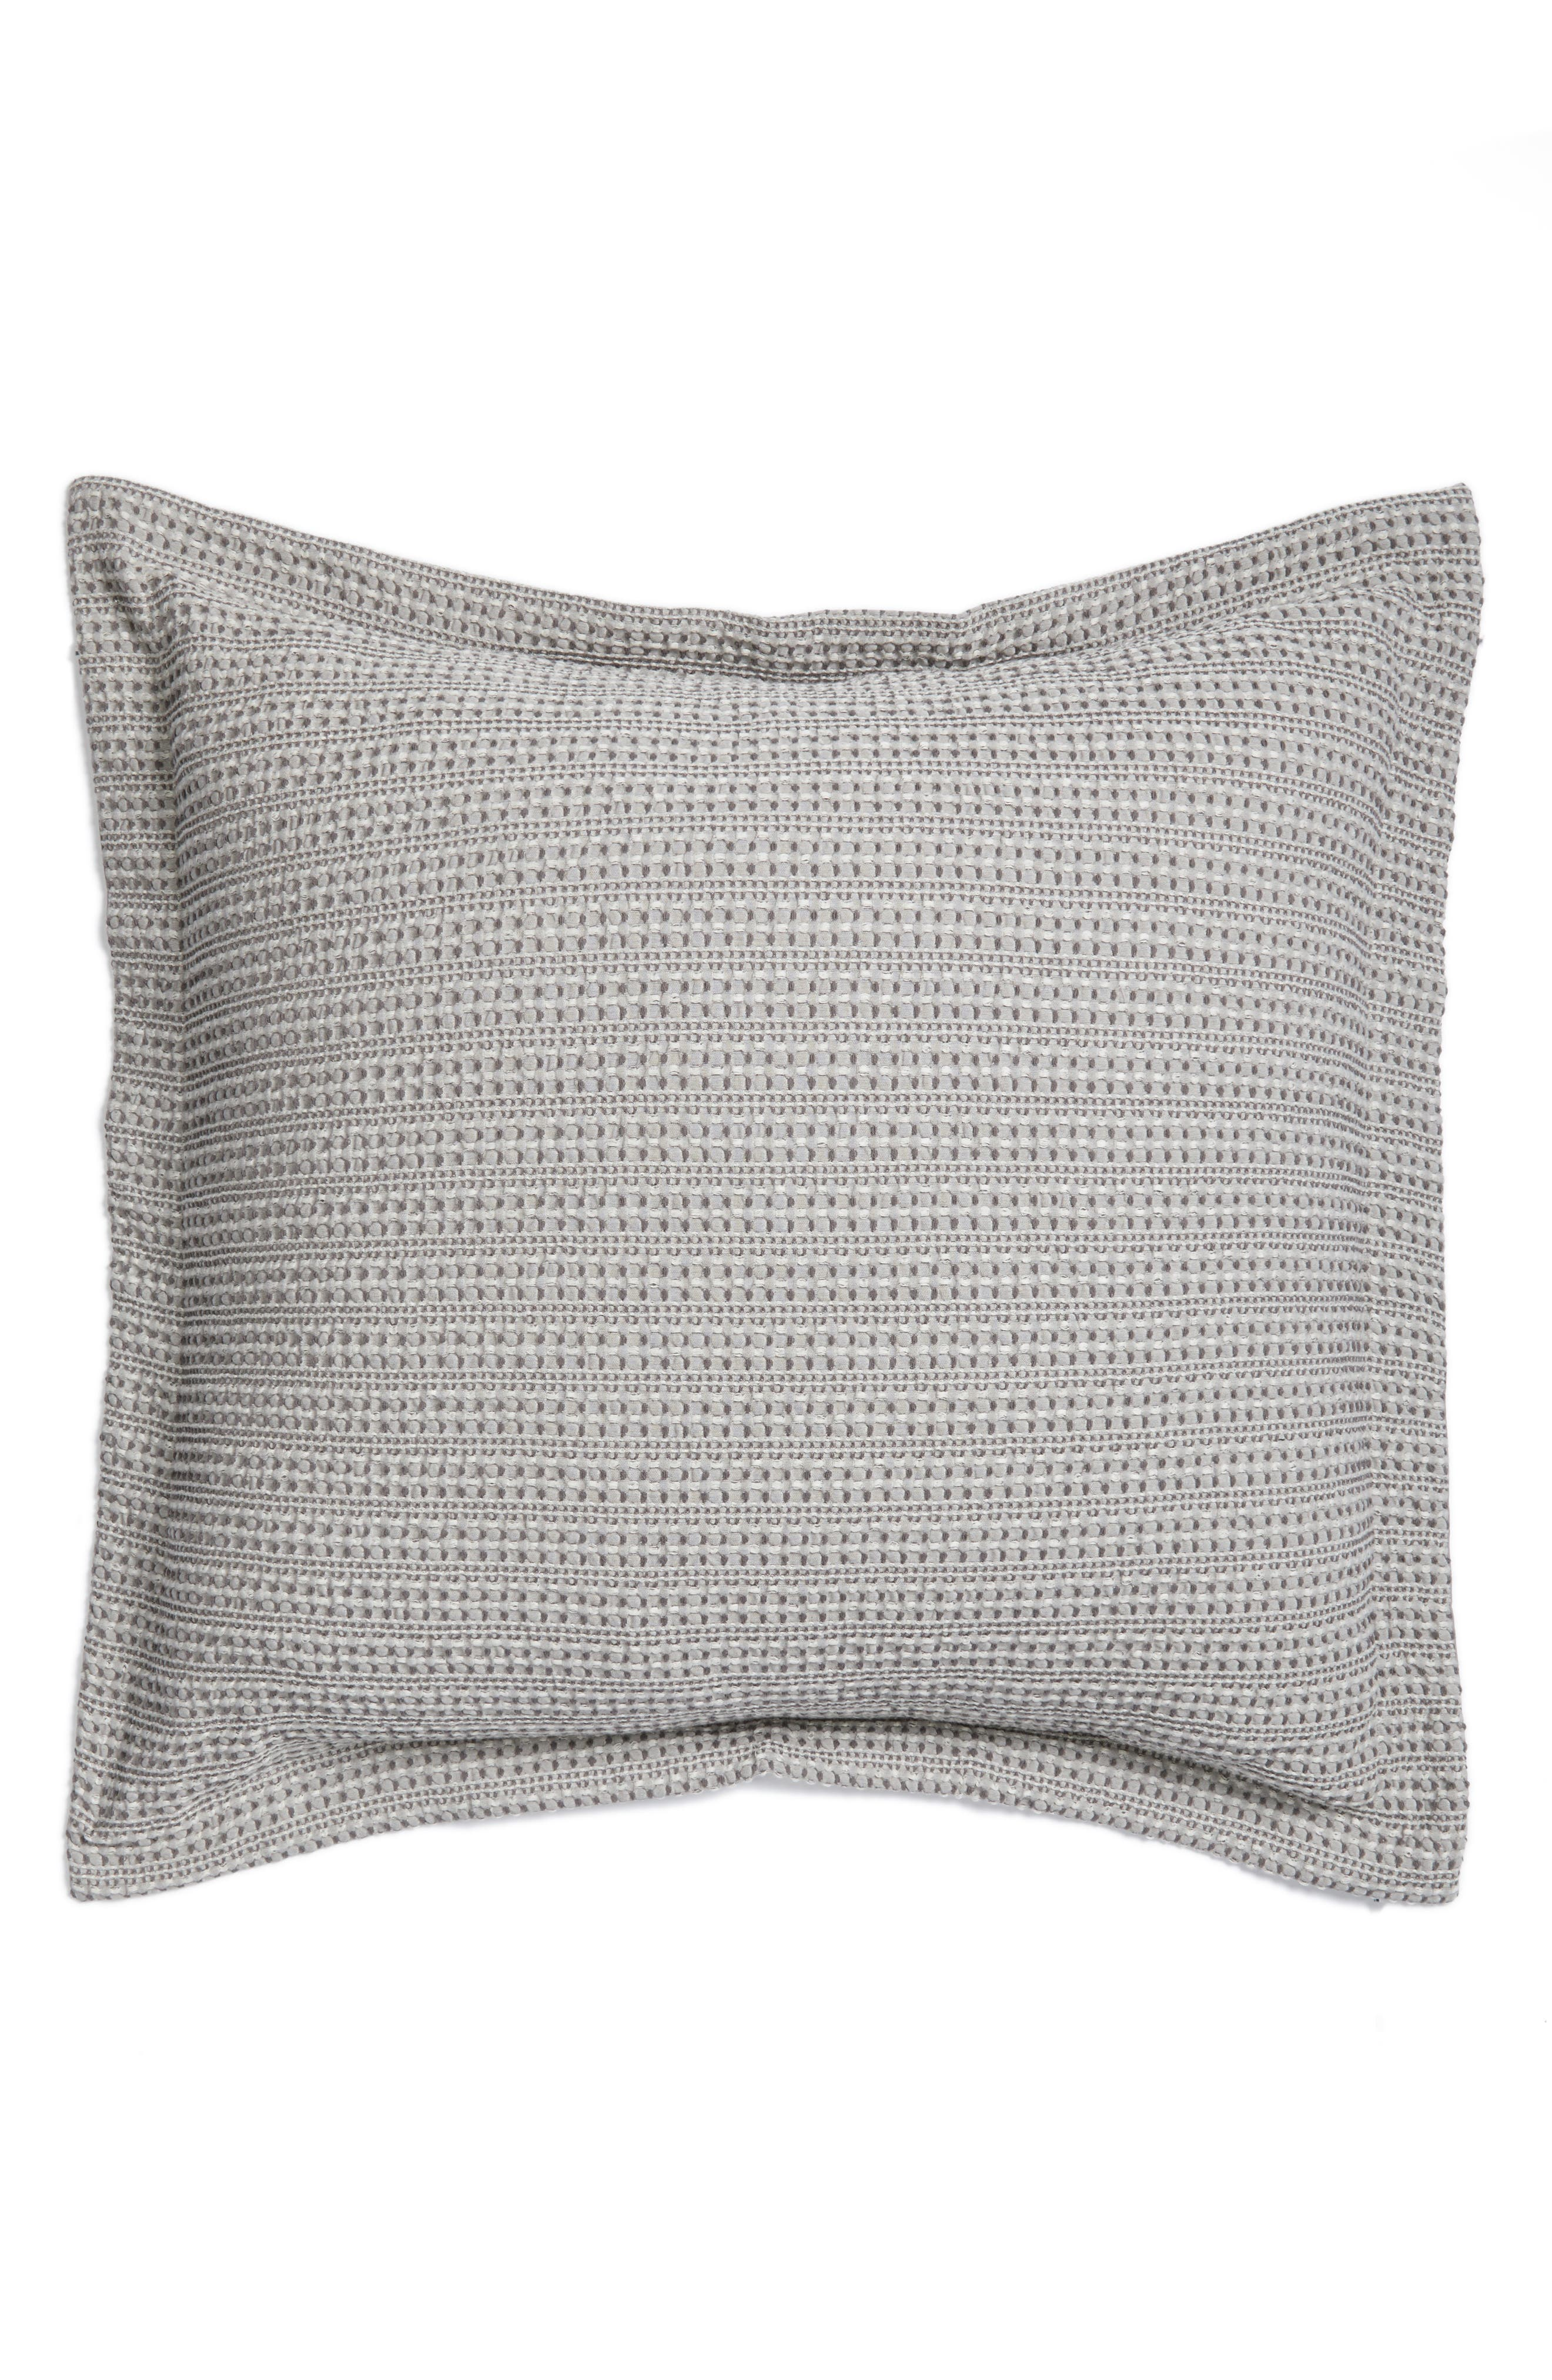 Stitched Accent Pillow,                             Main thumbnail 1, color,                             020